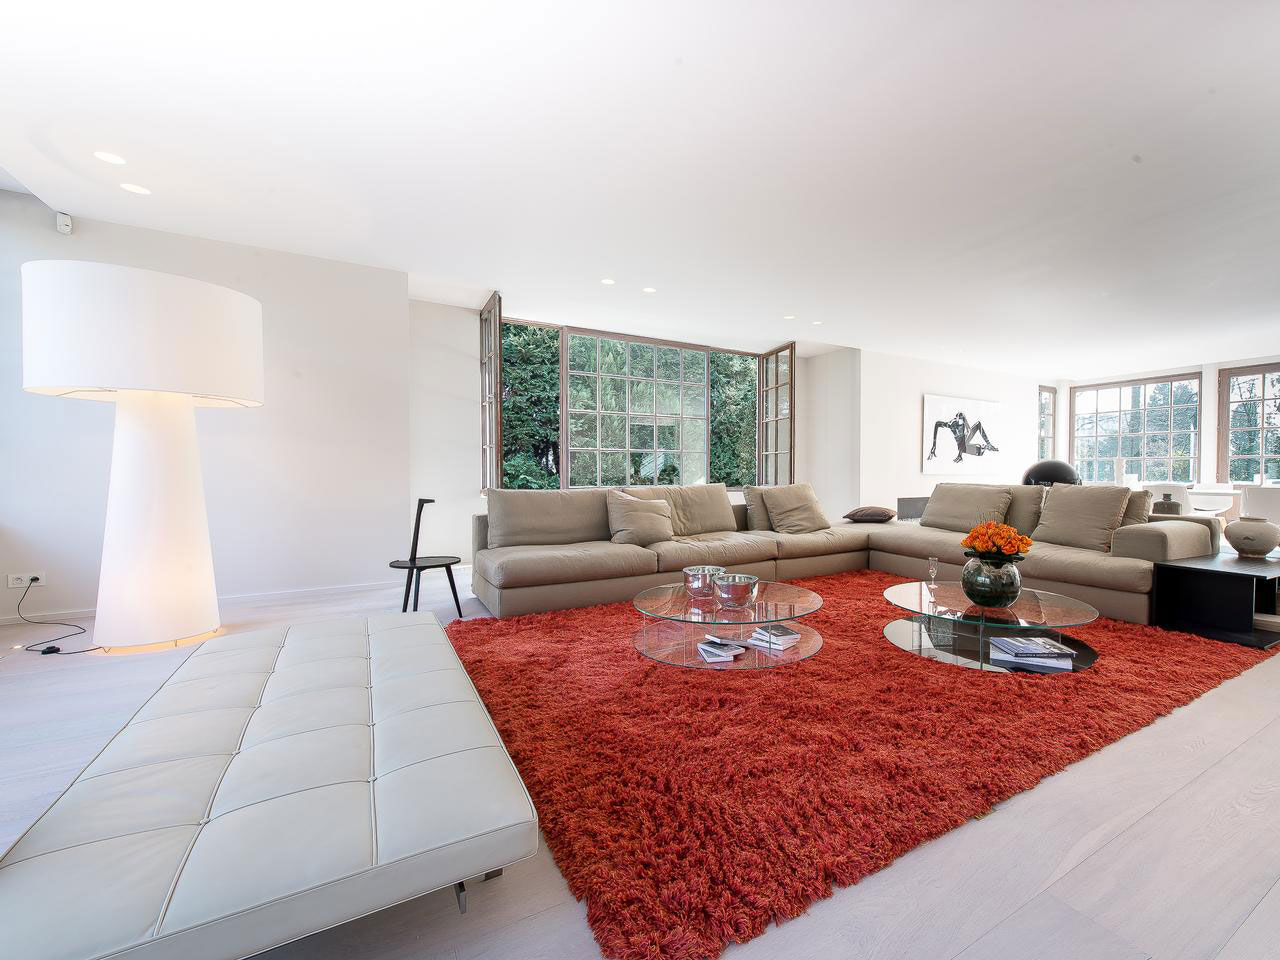 Thick Orange Rug, Sofas, Glass Coffee Tables, Living Room, House Renovation in Sint-Genesius-Rode, Belgium